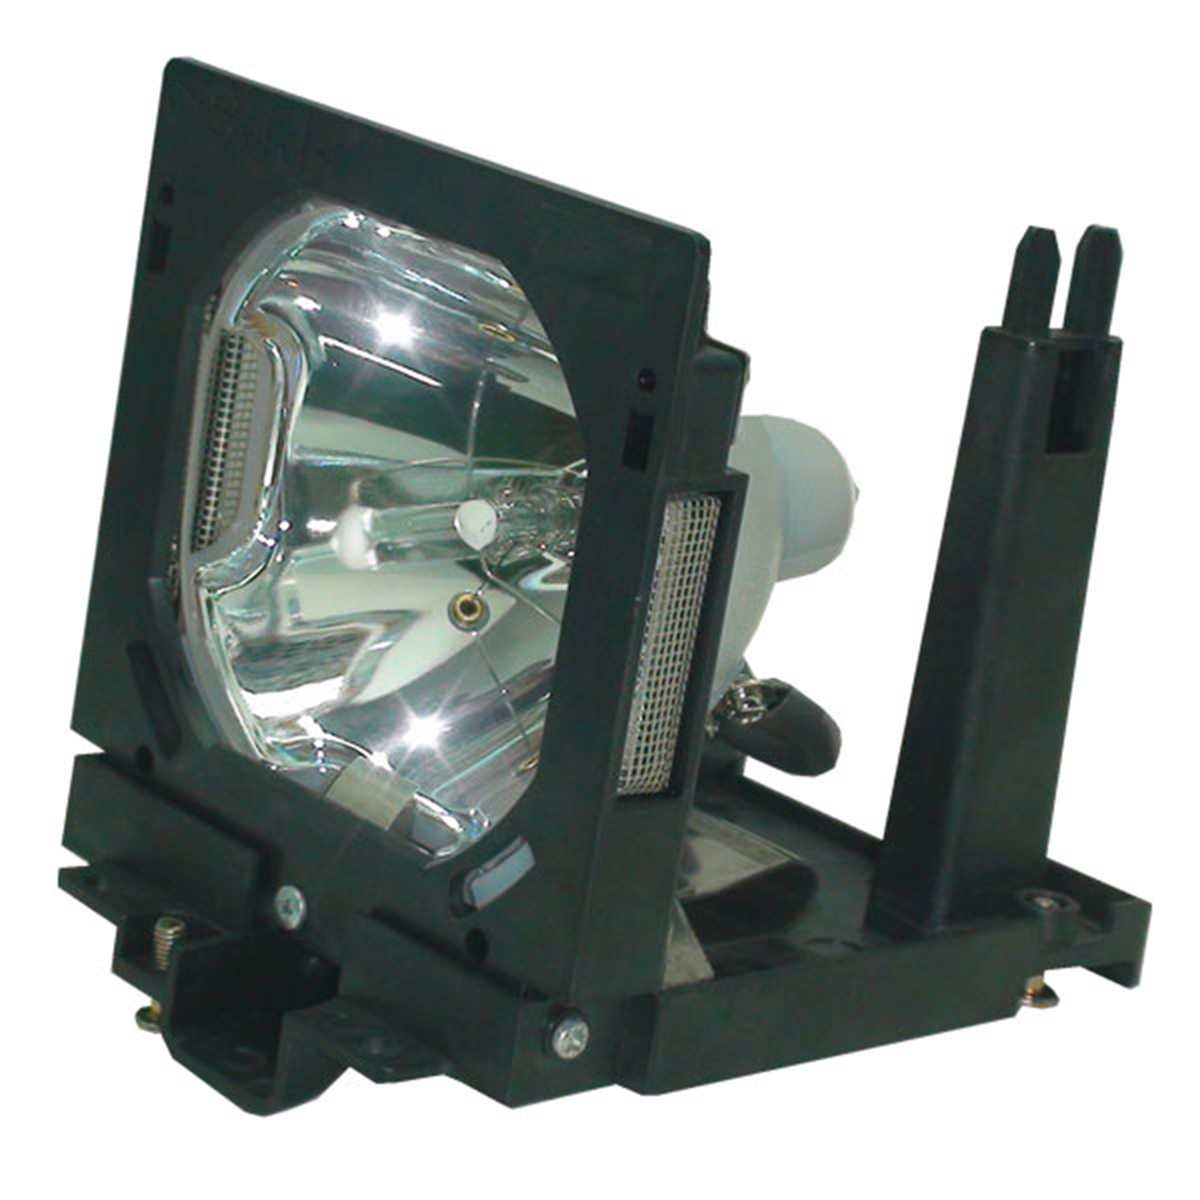 Lamp Housing For Eiki 610-3157689 / 6103157689 Projector DLP LCD Bulb